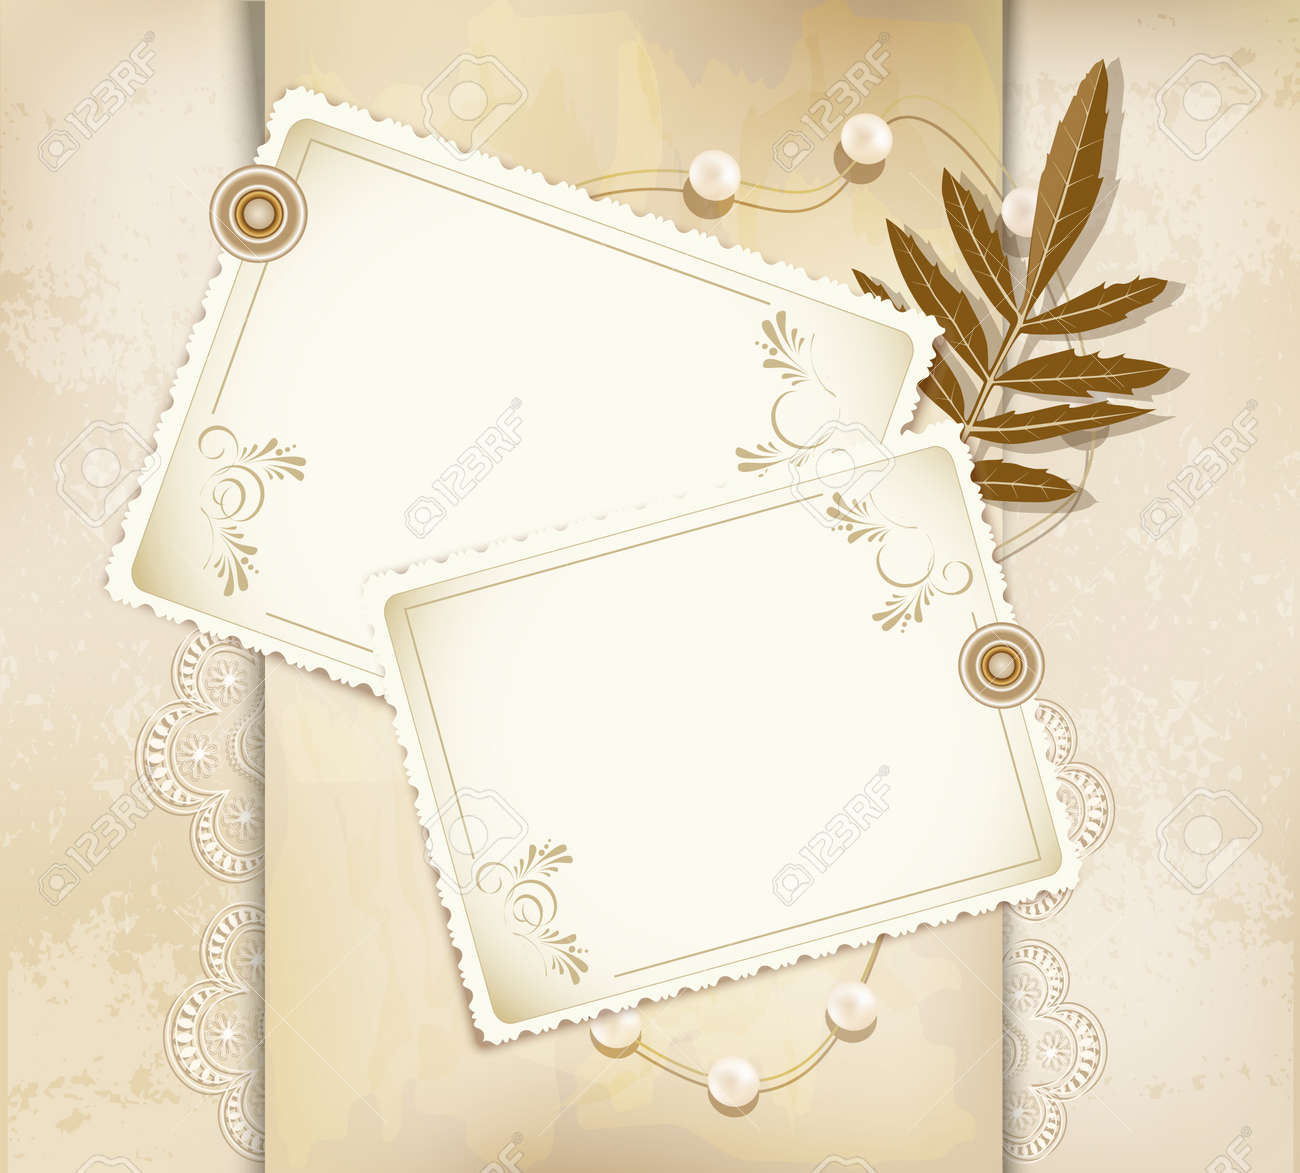 Grunge Vintage Background With A Greeting Card Pearls Flowers